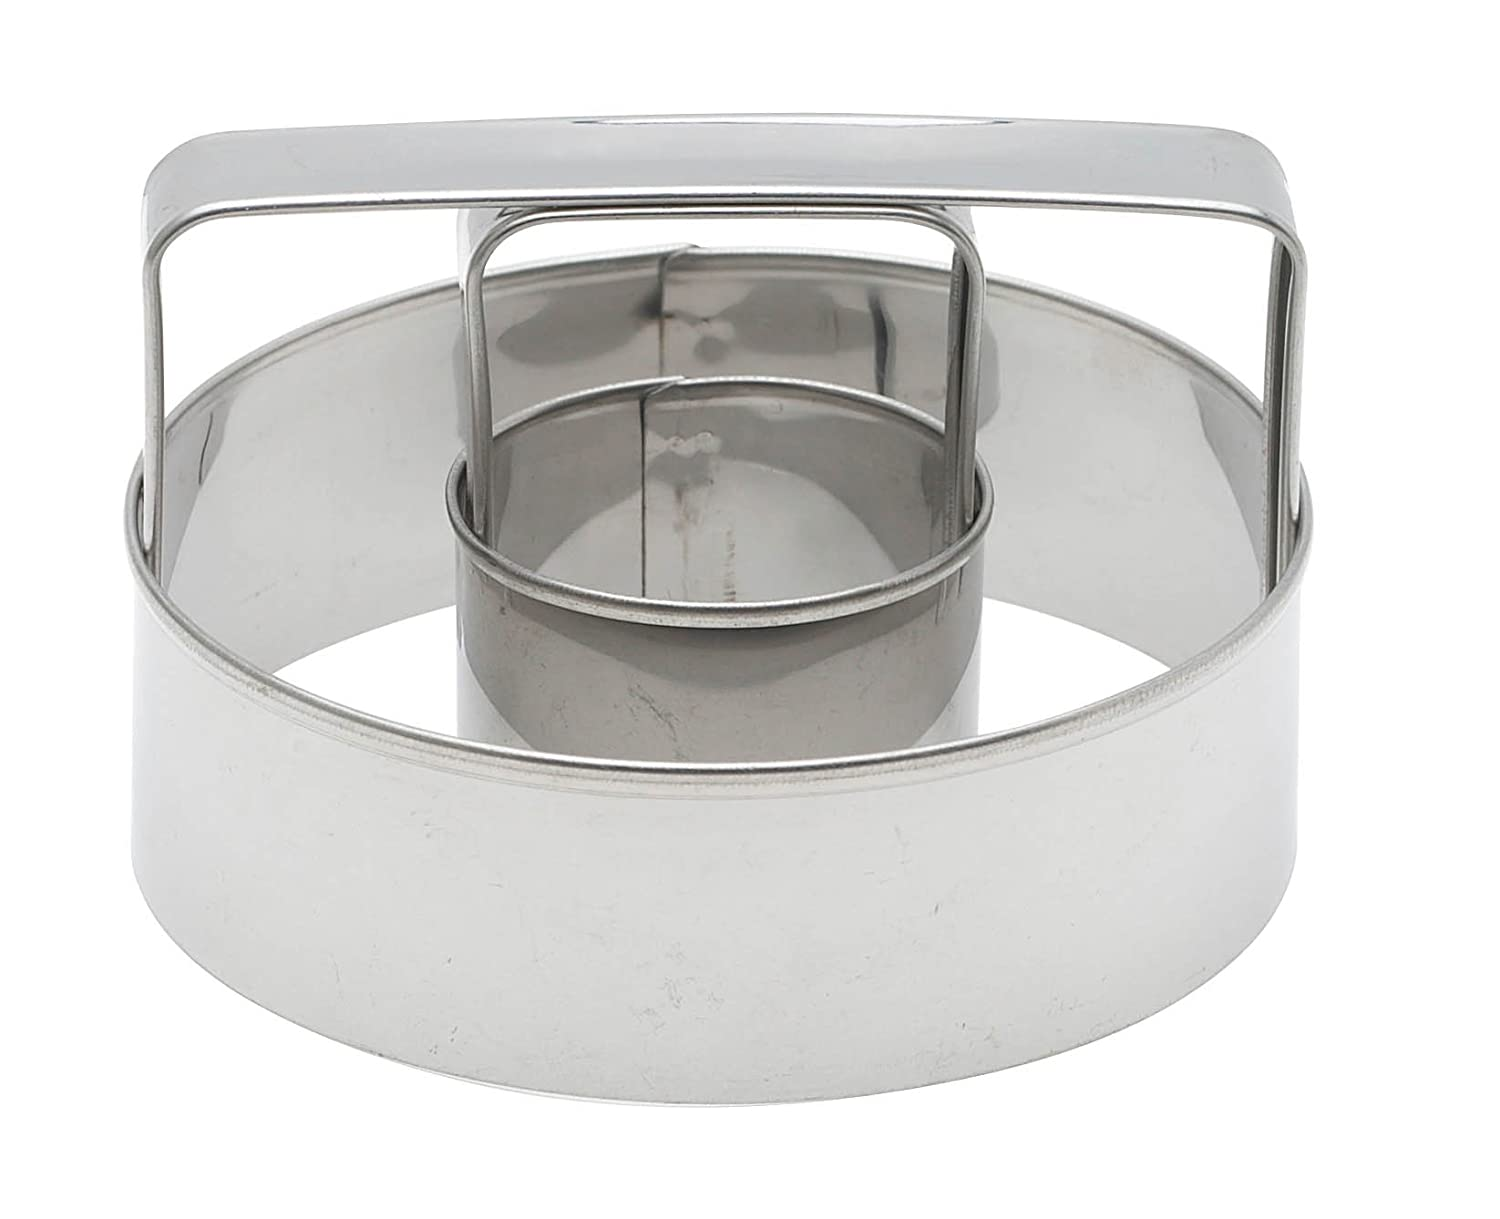 Mrs. Anderson's Baking Donut Cutter with Handle, Stainless Steel, 3-Inches x 3-Inches Mrs. Anderson's Baking 45871